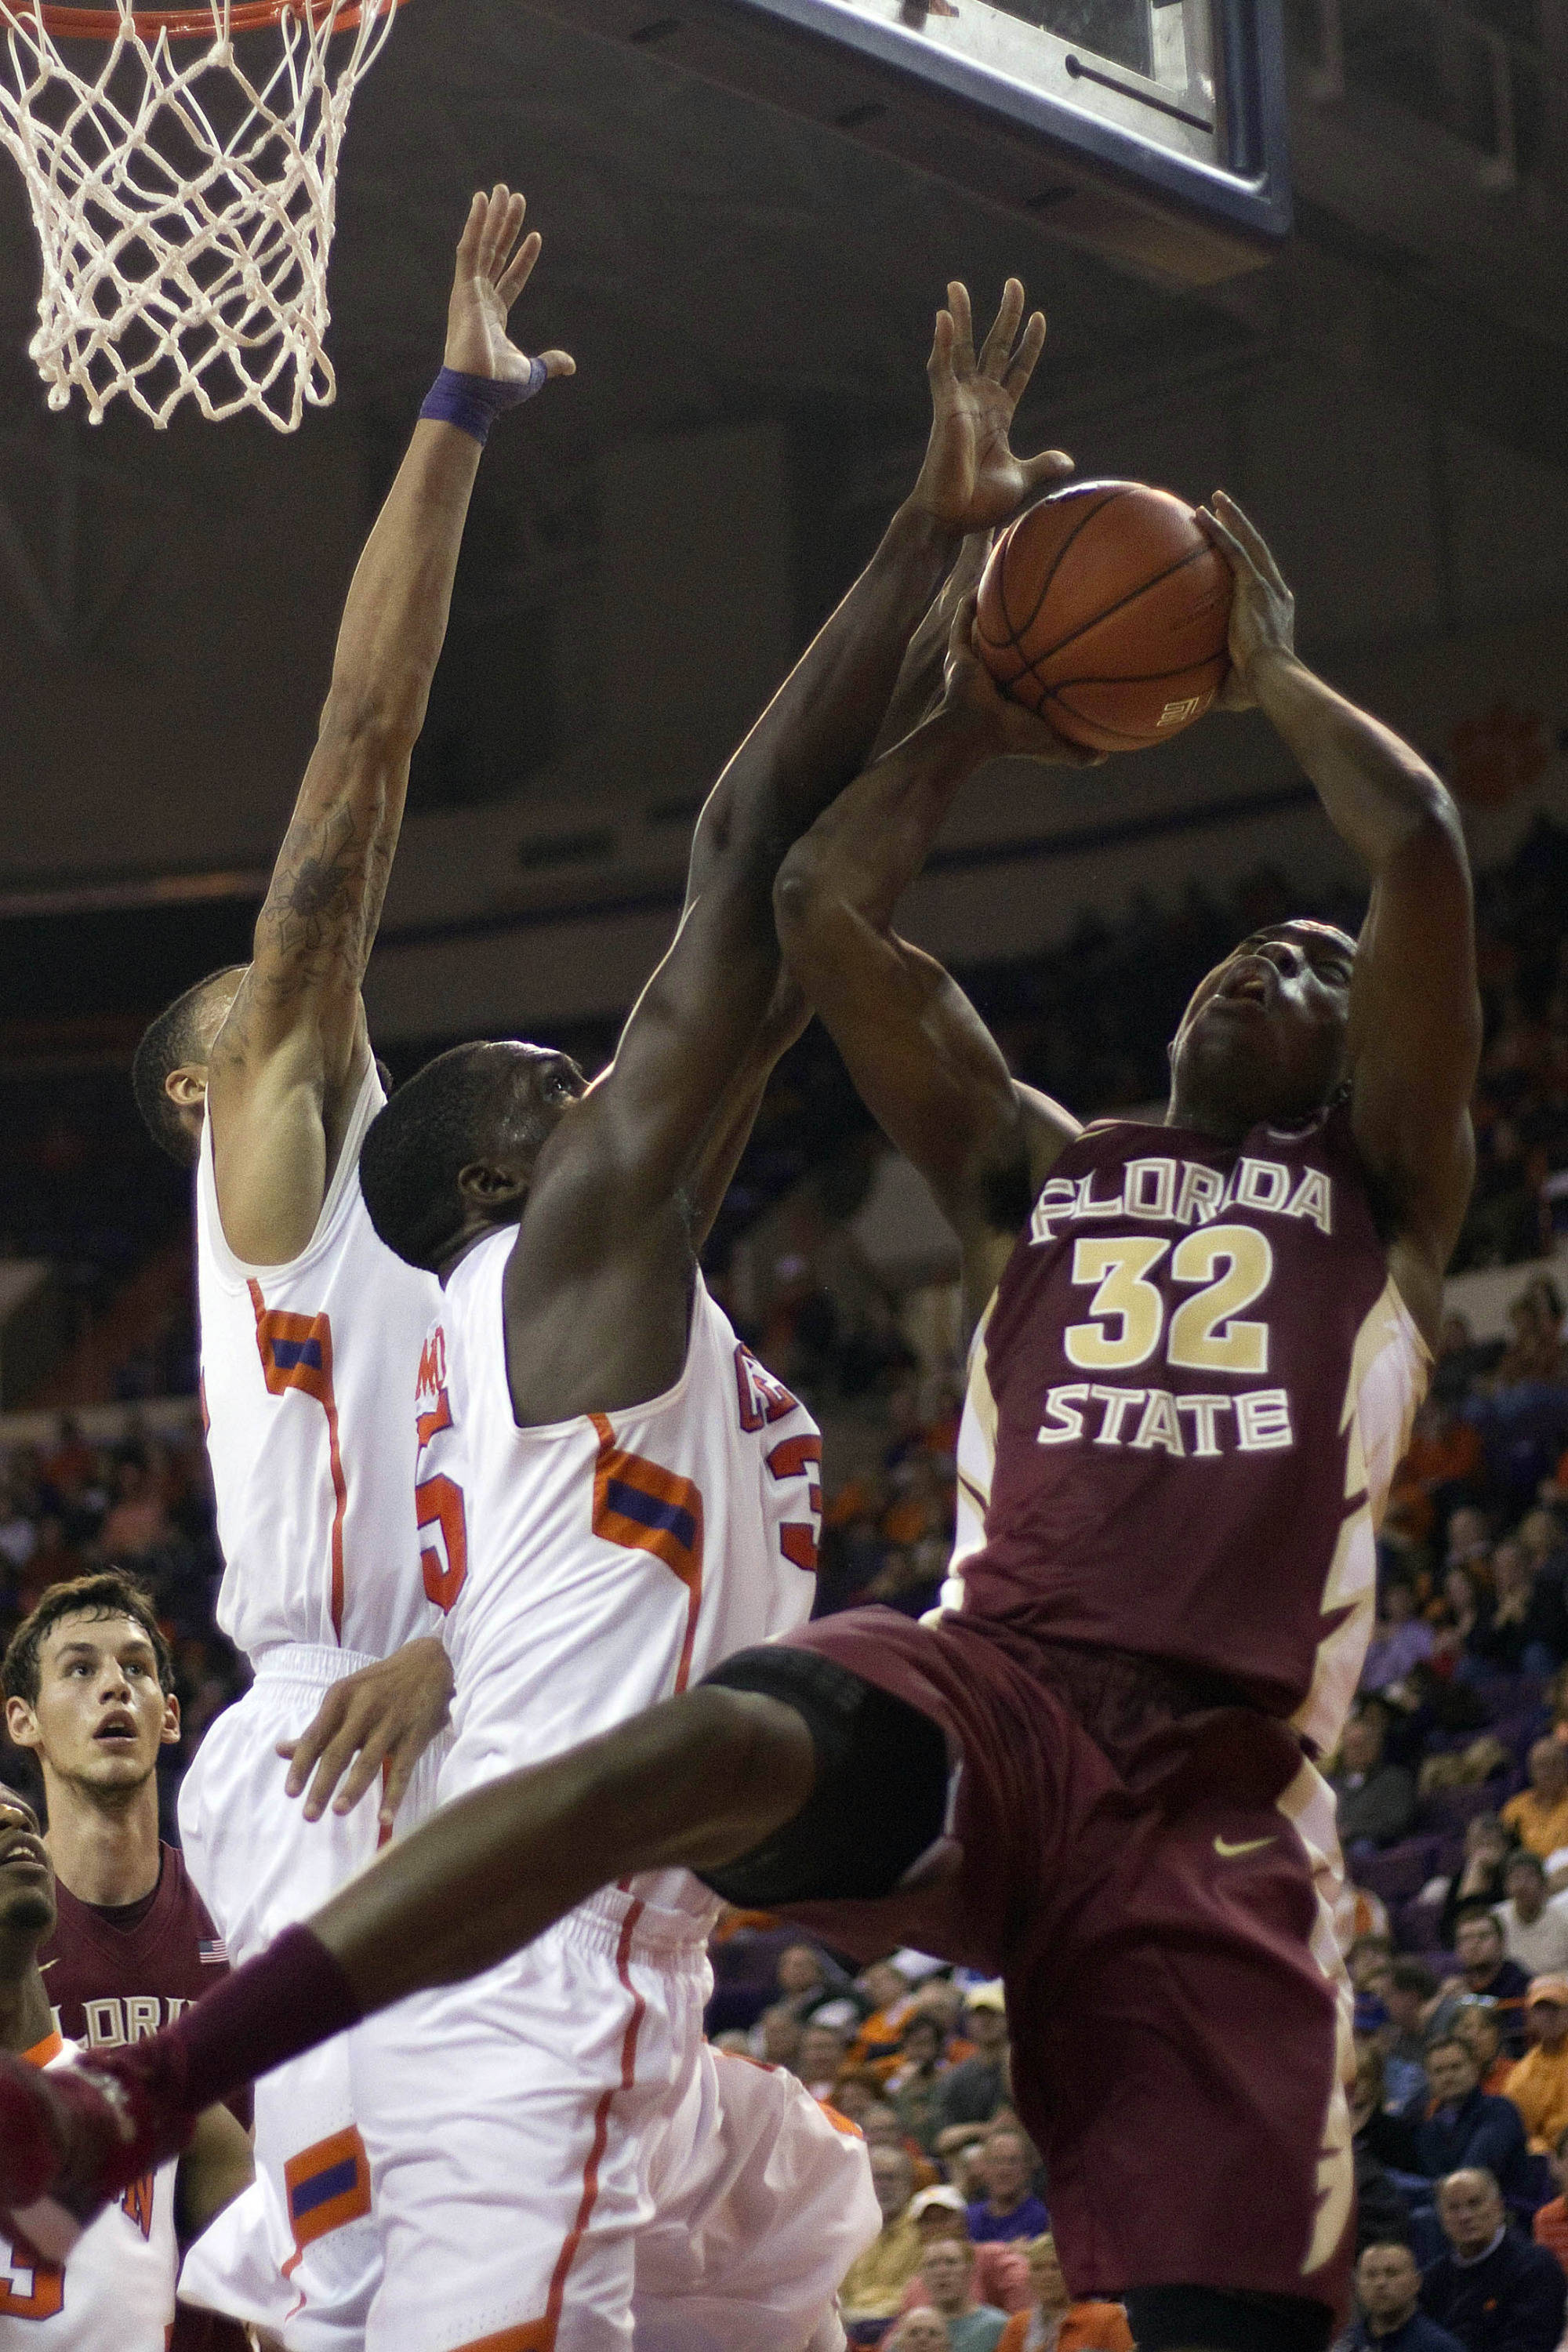 Jan 9, 2014; Clemson, SC, USA; Florida State Seminoles guard Montay Brandon (32) goes in for the layup while being defended by Clemson Tigers center Landry Nnoko (35) and forward K.J. McDaniels (32) during the second half at J.C. Littlejohn Coliseum. Seminoles won 56-41. Mandatory Credit: Joshua S. Kelly-USA TODAY Sports